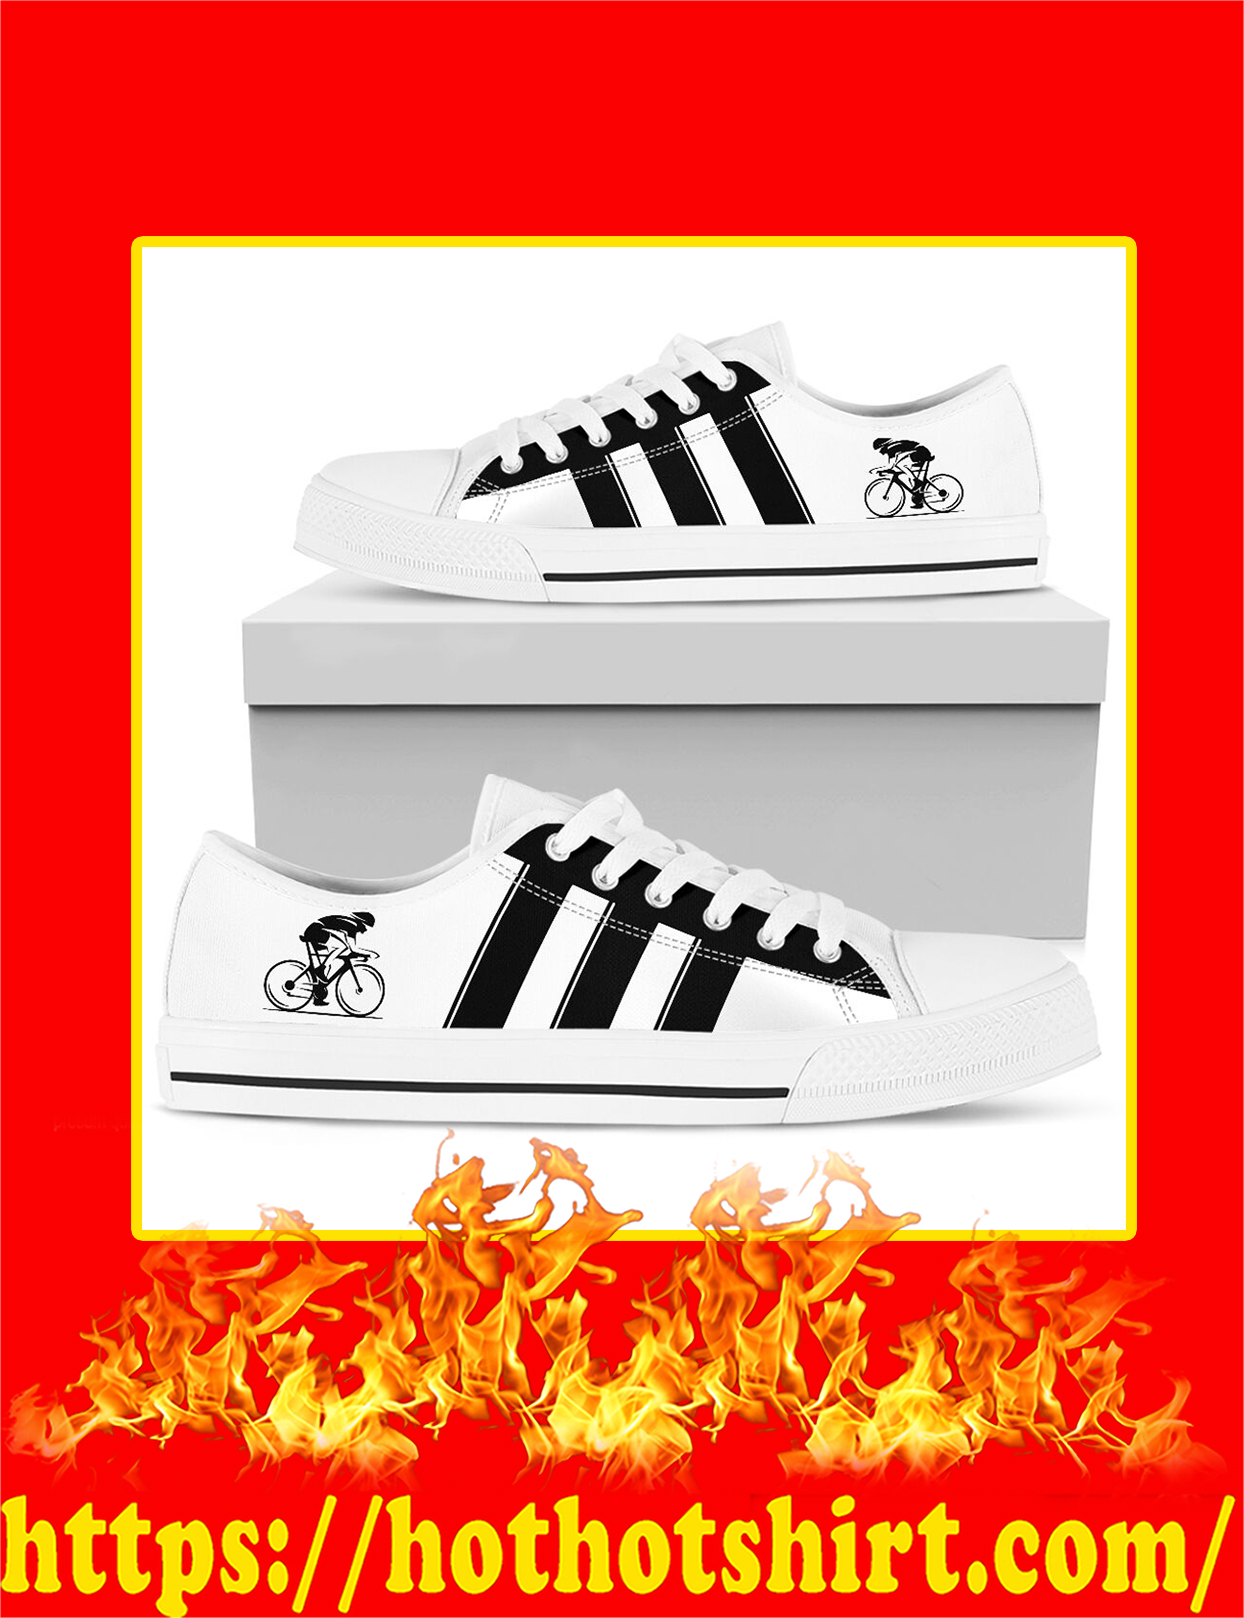 Cycling Low Top Shoes - Pic 4